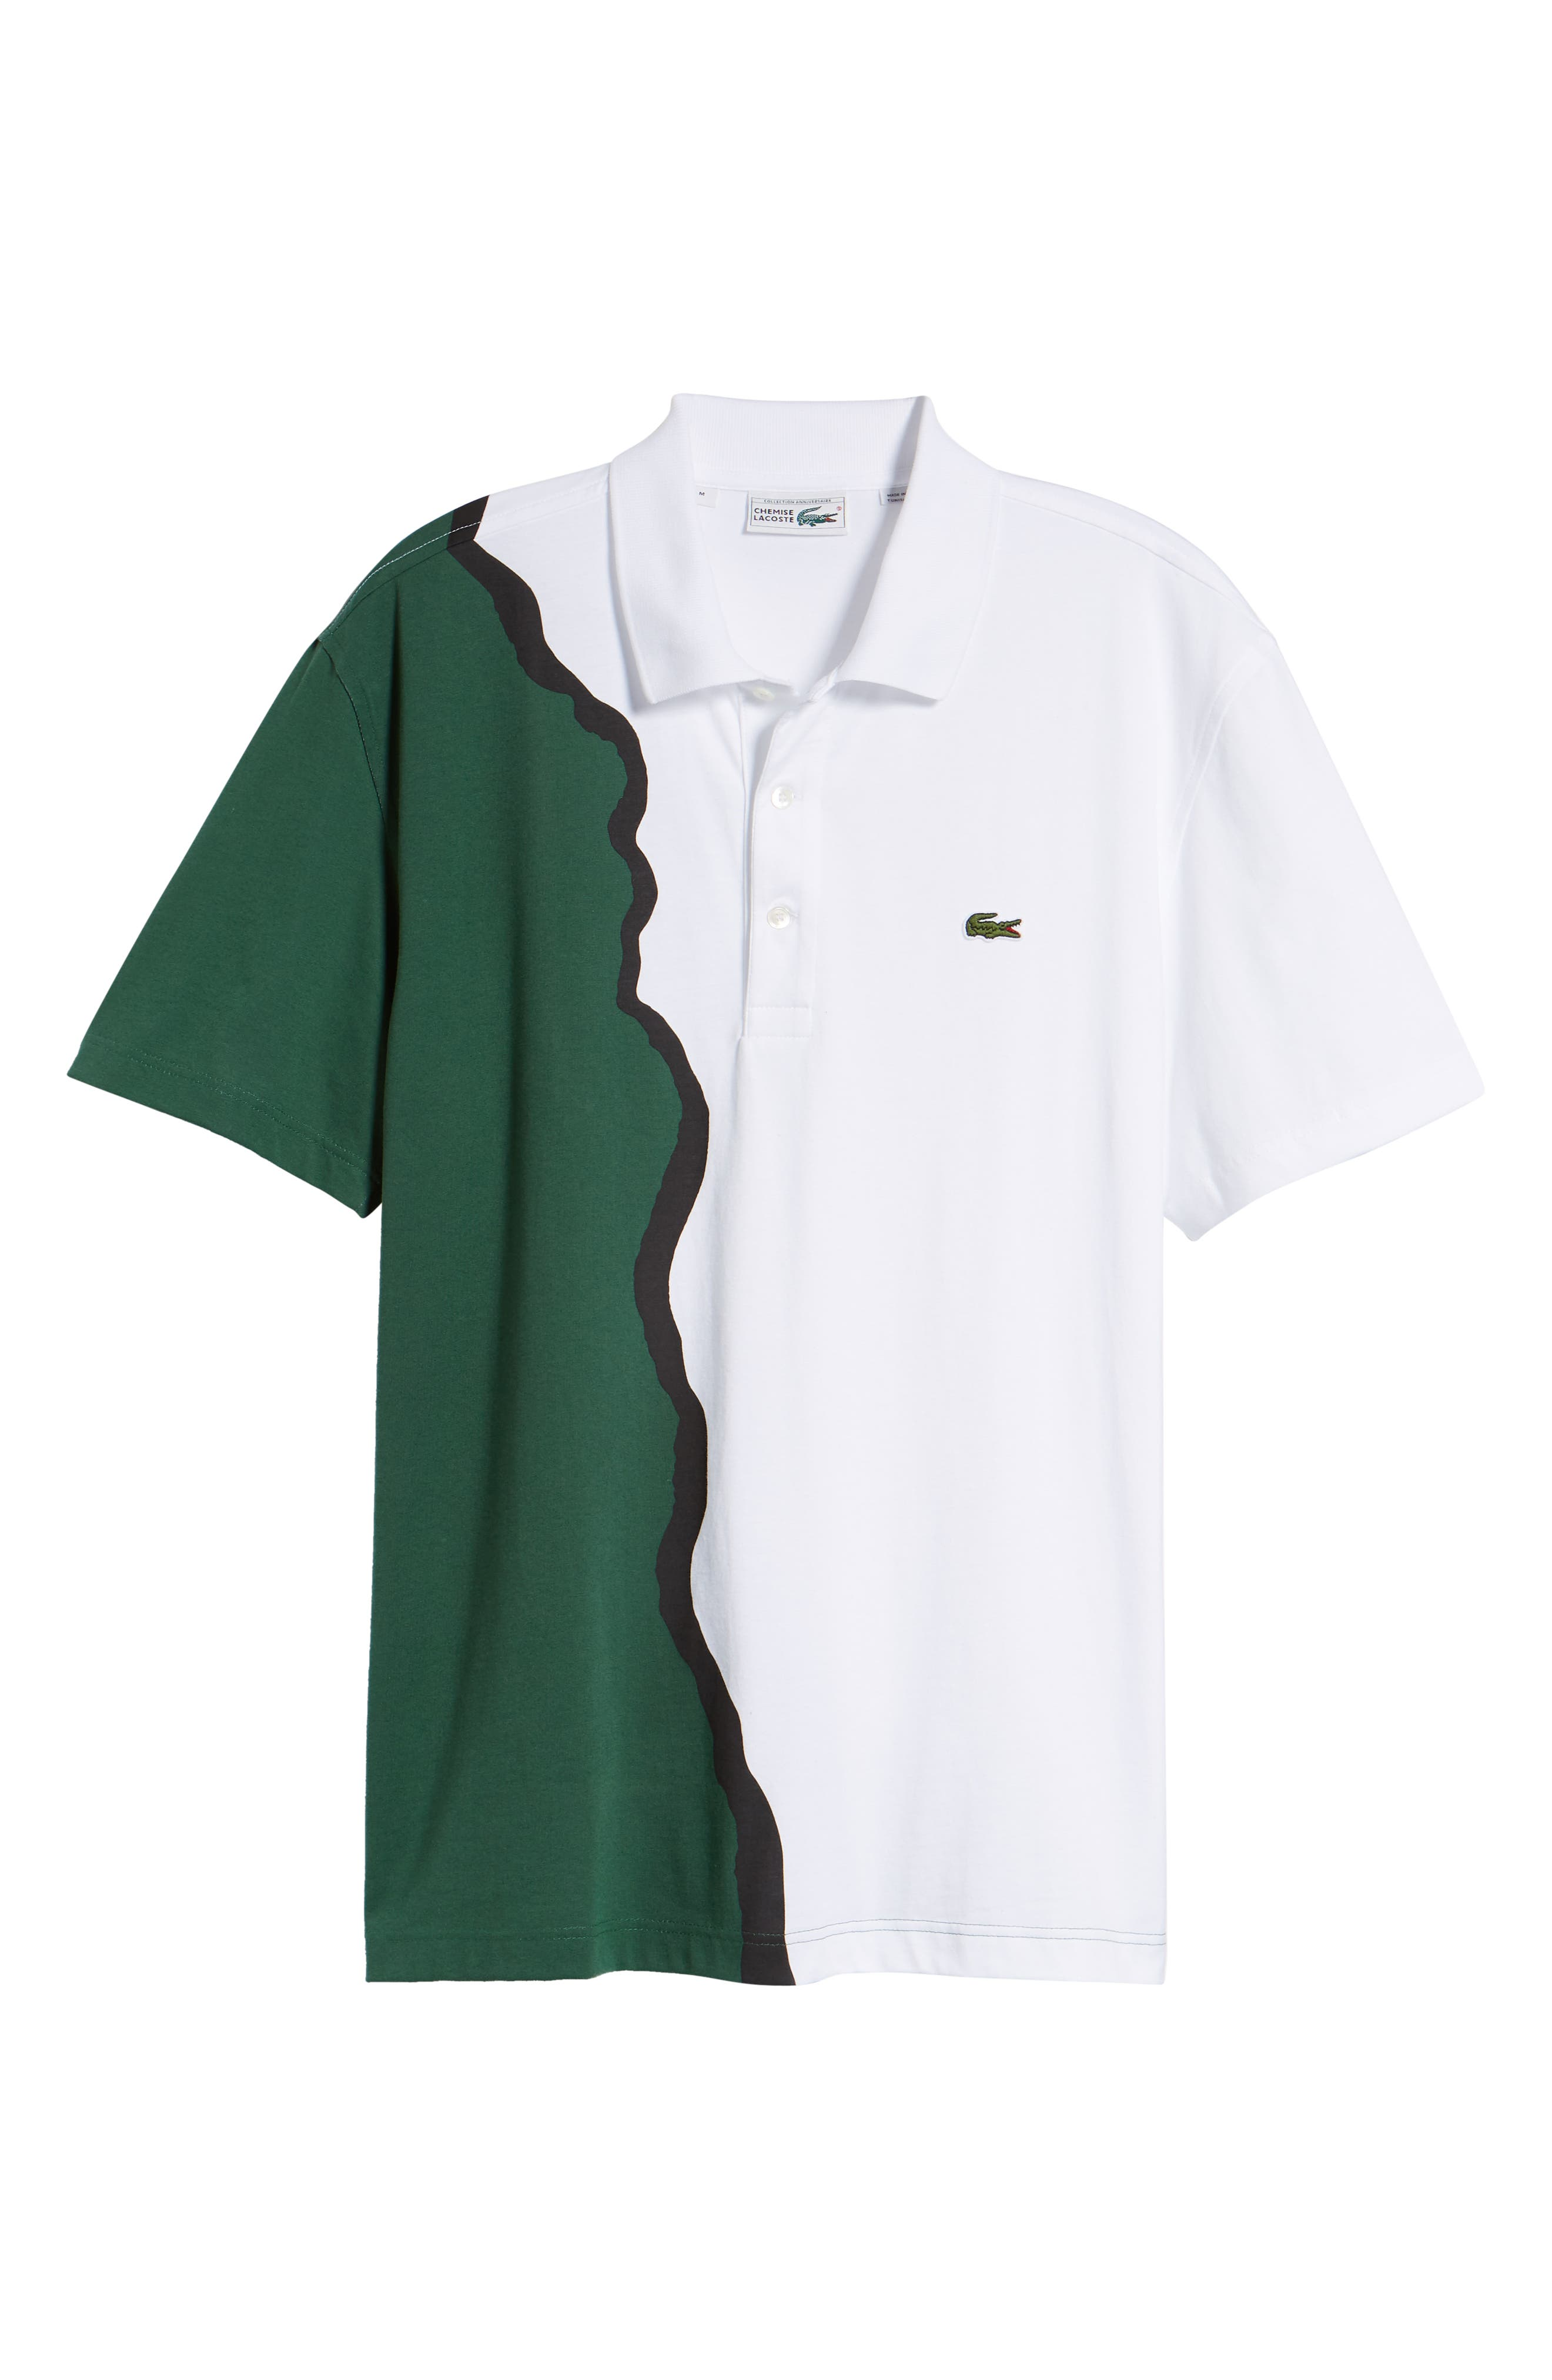 85th Anniversary Graphic Jersey Polo,                             Alternate thumbnail 6, color,                             300